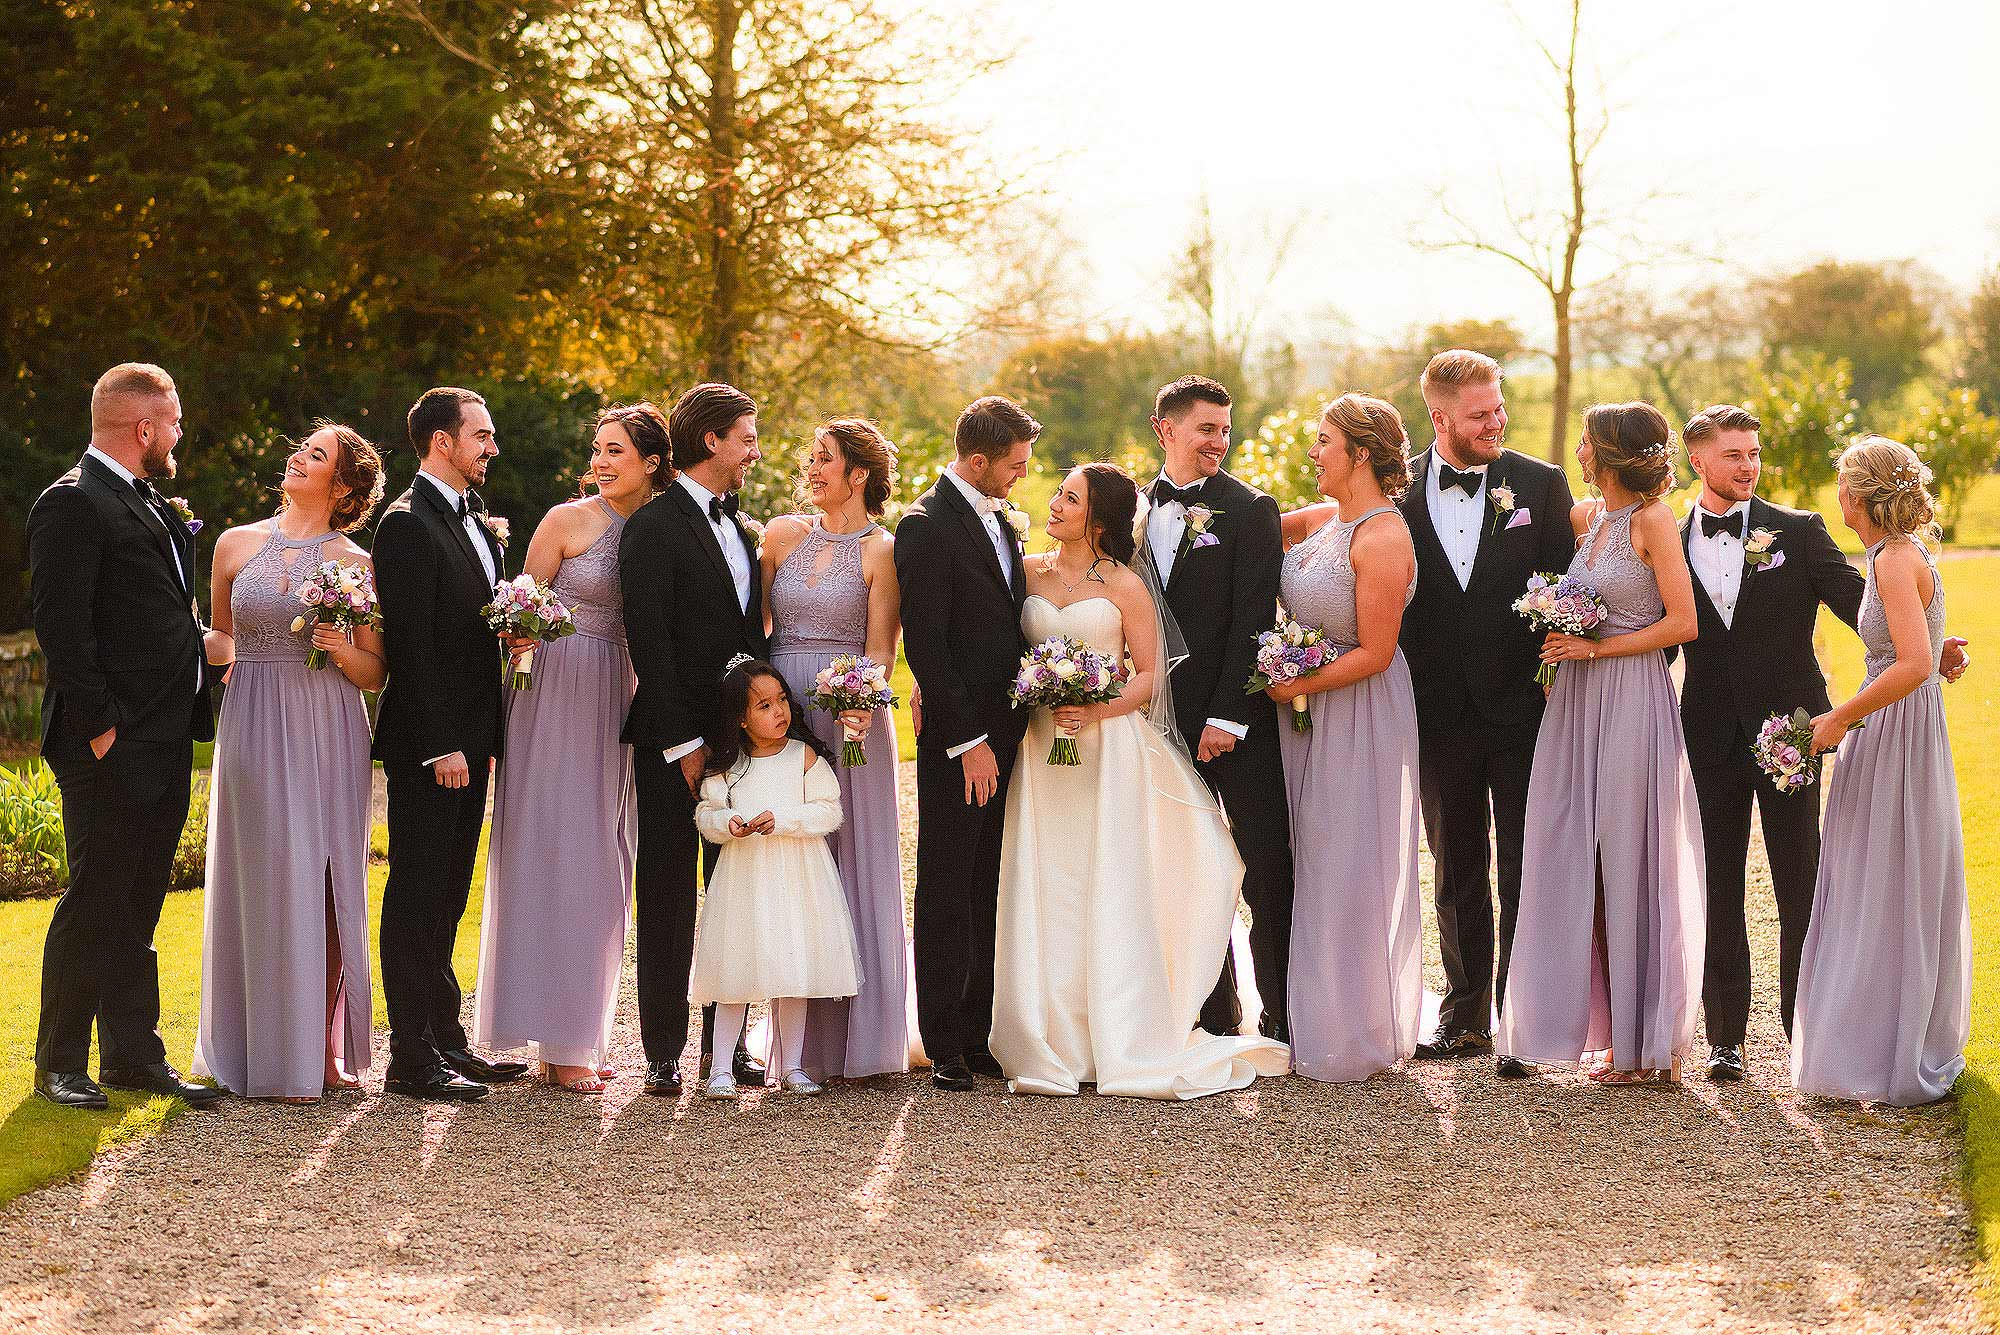 group photograph of bridal party in Eaves Hall gardens